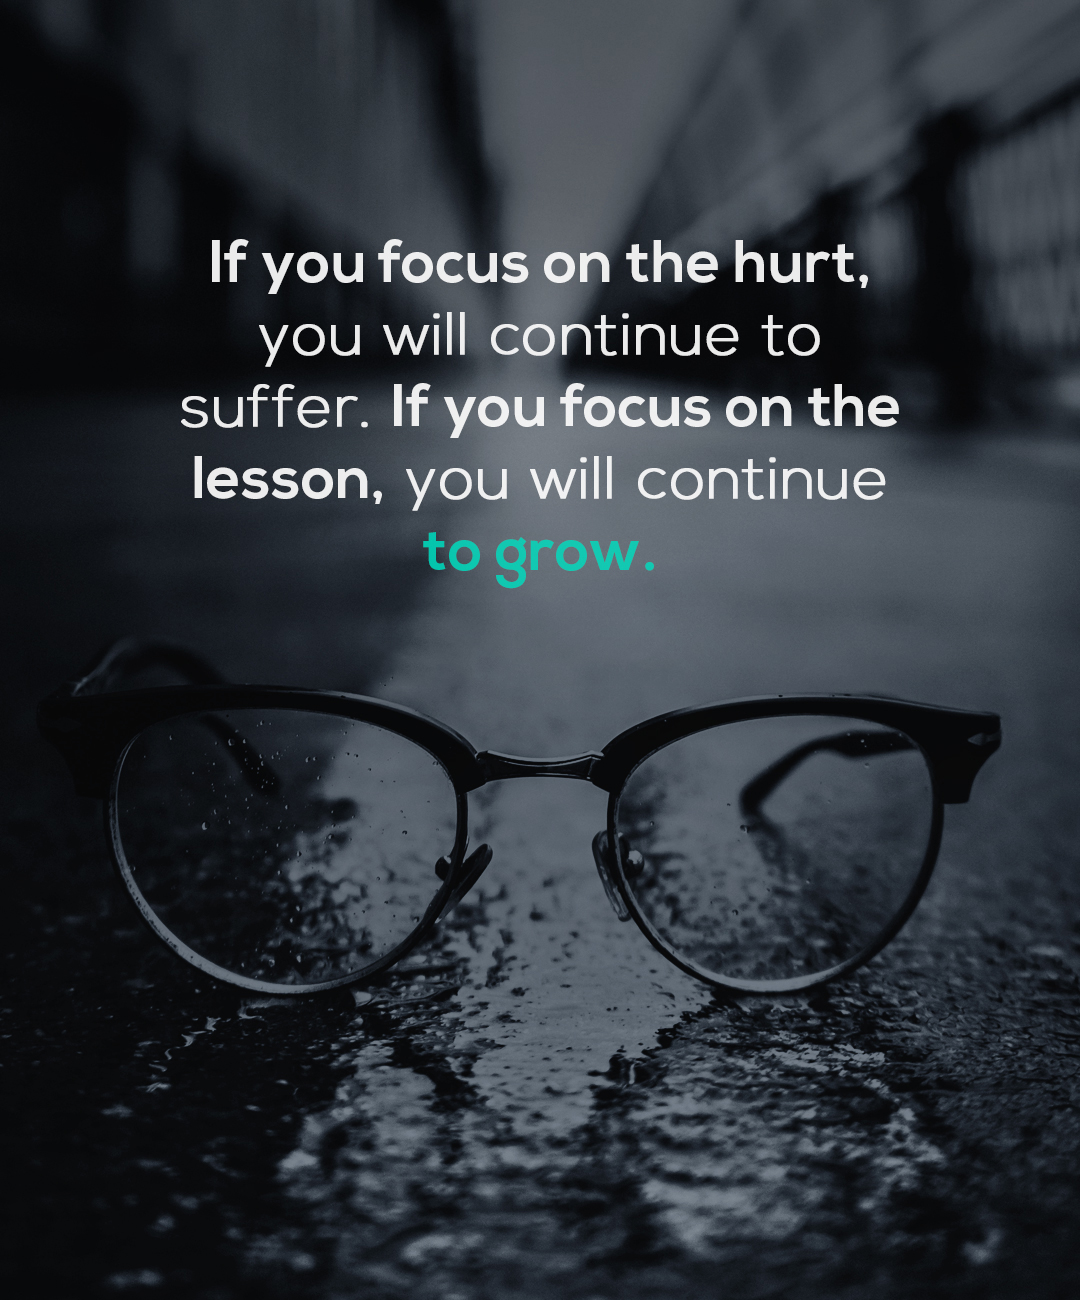 """If you focus on the hurt, you will continue to suffer. If you focus on the lesson, you will continue to grow."" -Anonymous [1800×1300]"